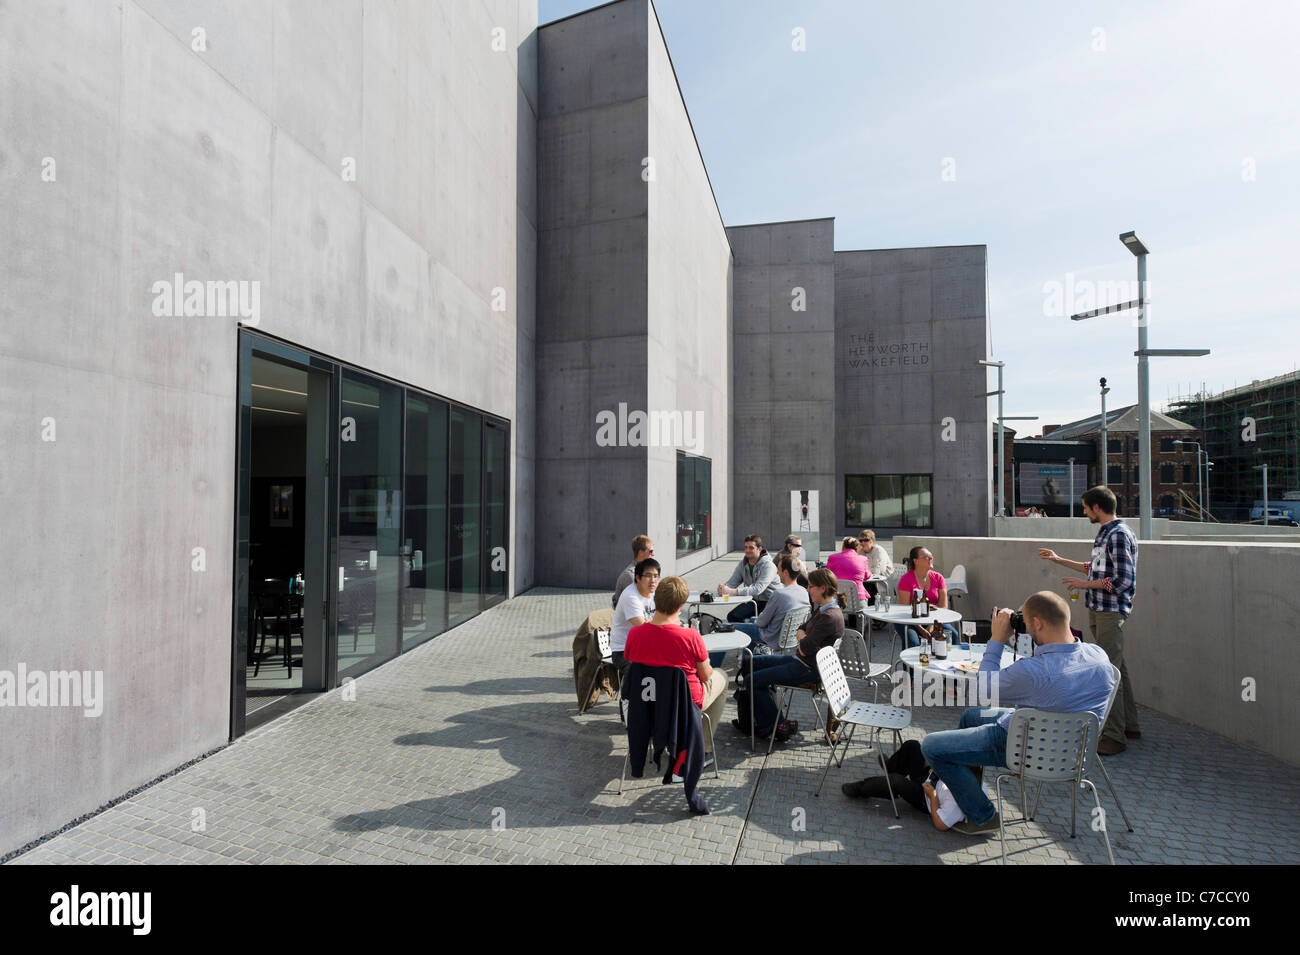 Cafe terrace at The Hepworth Wakefield art gallery, Wakefield, West Yorkshire, UK - Stock Image